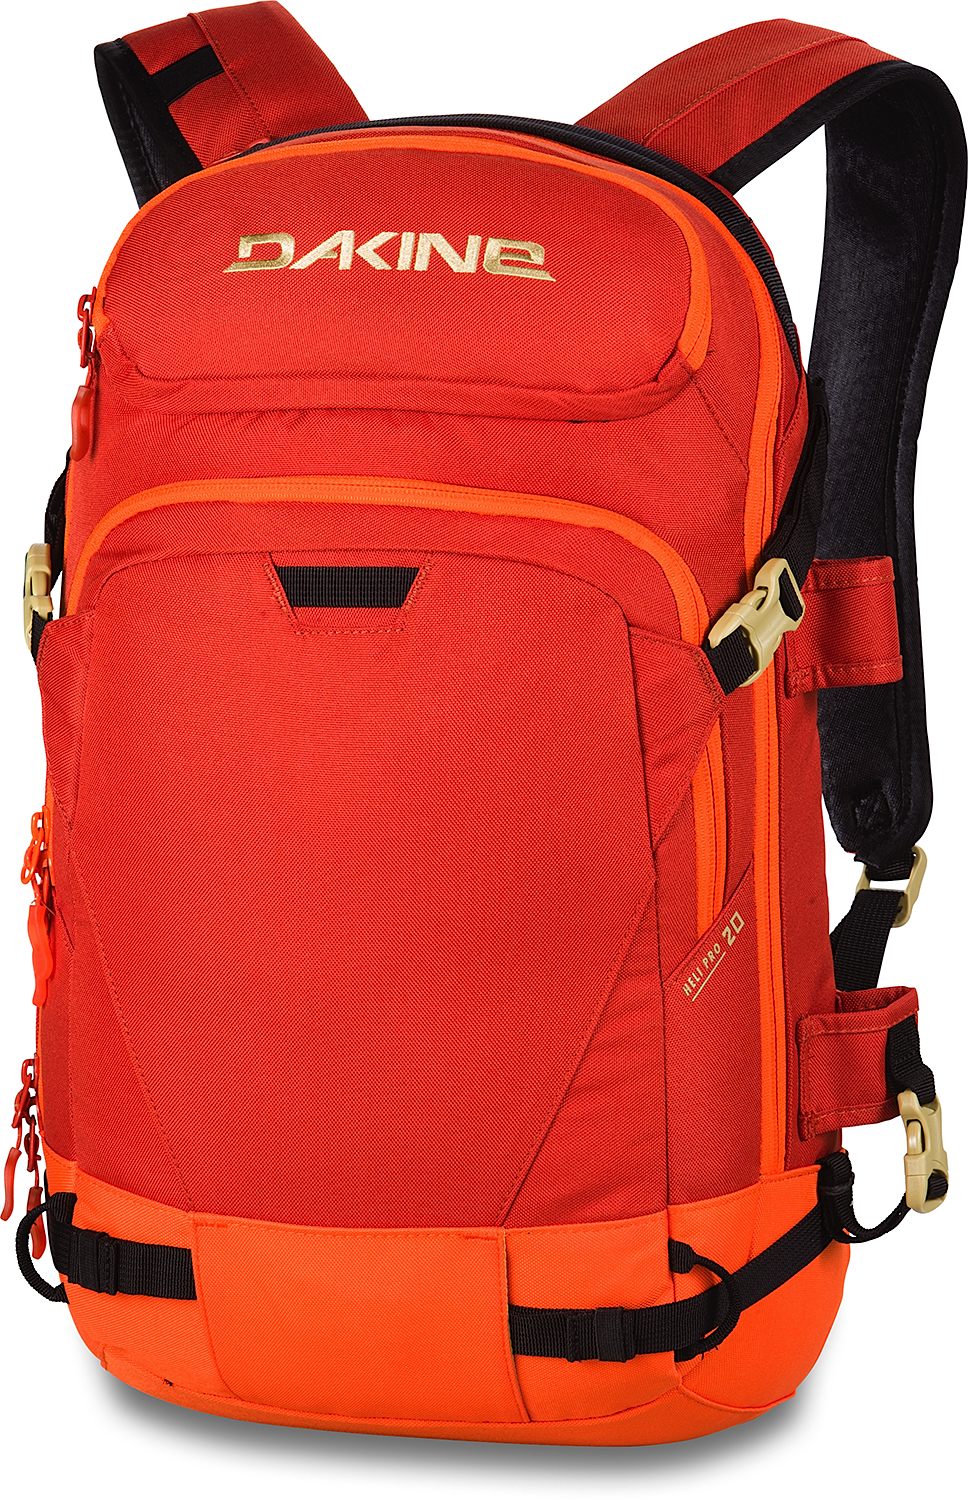 dakine heli pro dlx with 272023006286 on Dakine Heli Pro Dlx 24l Blkripstop furthermore 36256 Dakine Heli Pro Dlx 20l Uni Svart together with Watch furthermore The Essential One Pijama Para Beb233 Paquete De 3 69 Meses Ess36 P 41980 furthermore Best Image Womens Dakine Backpacks.